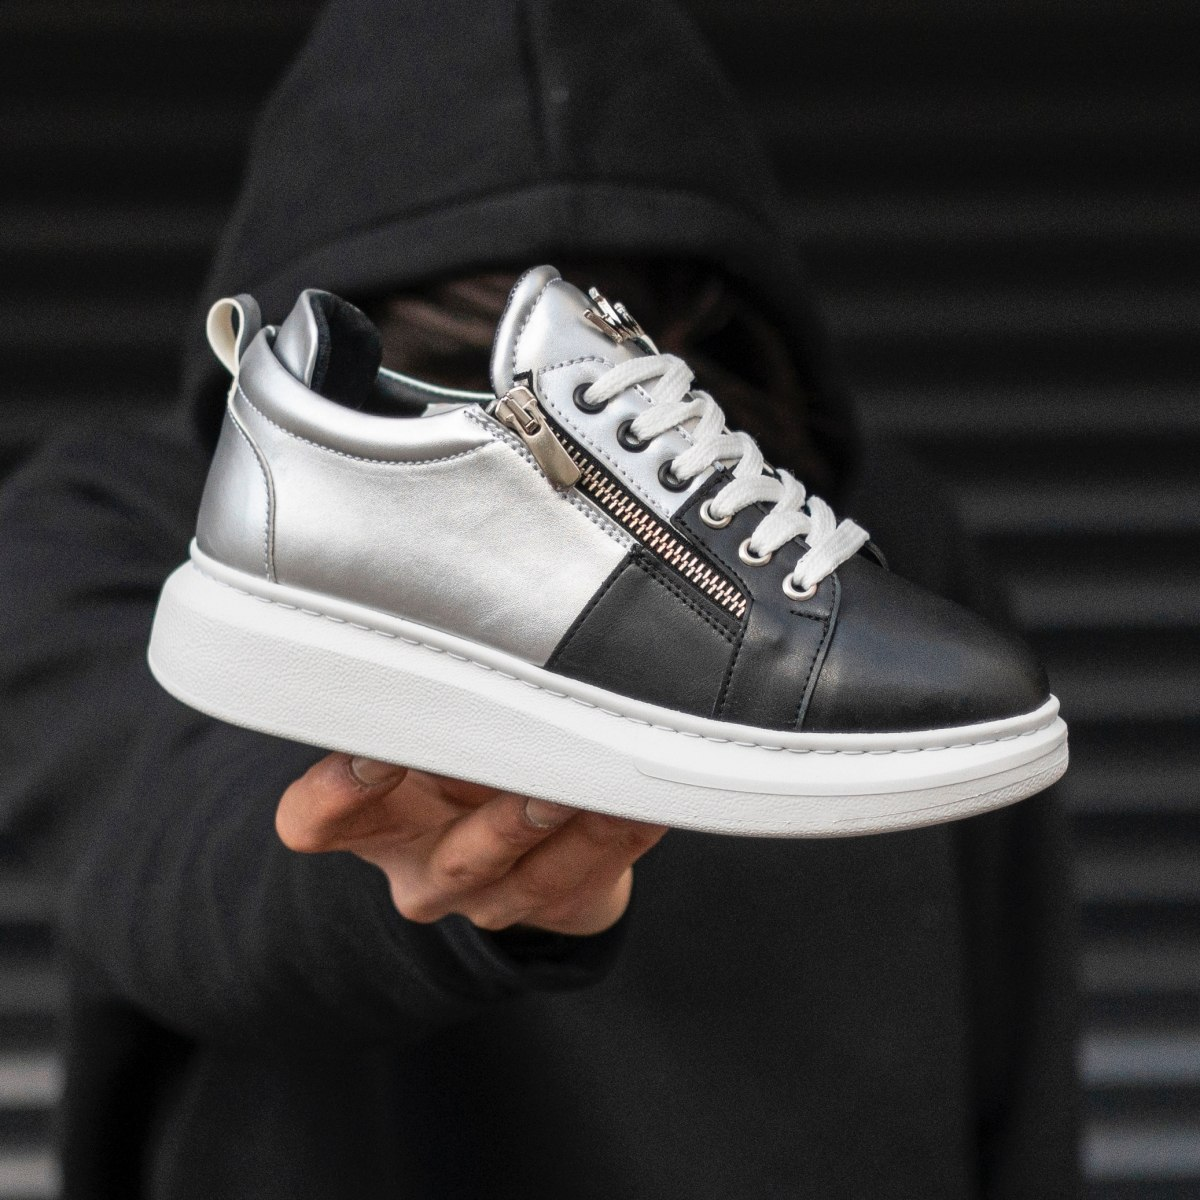 Woman Hype Sole Zipped Style Sneakers In Silver-Black